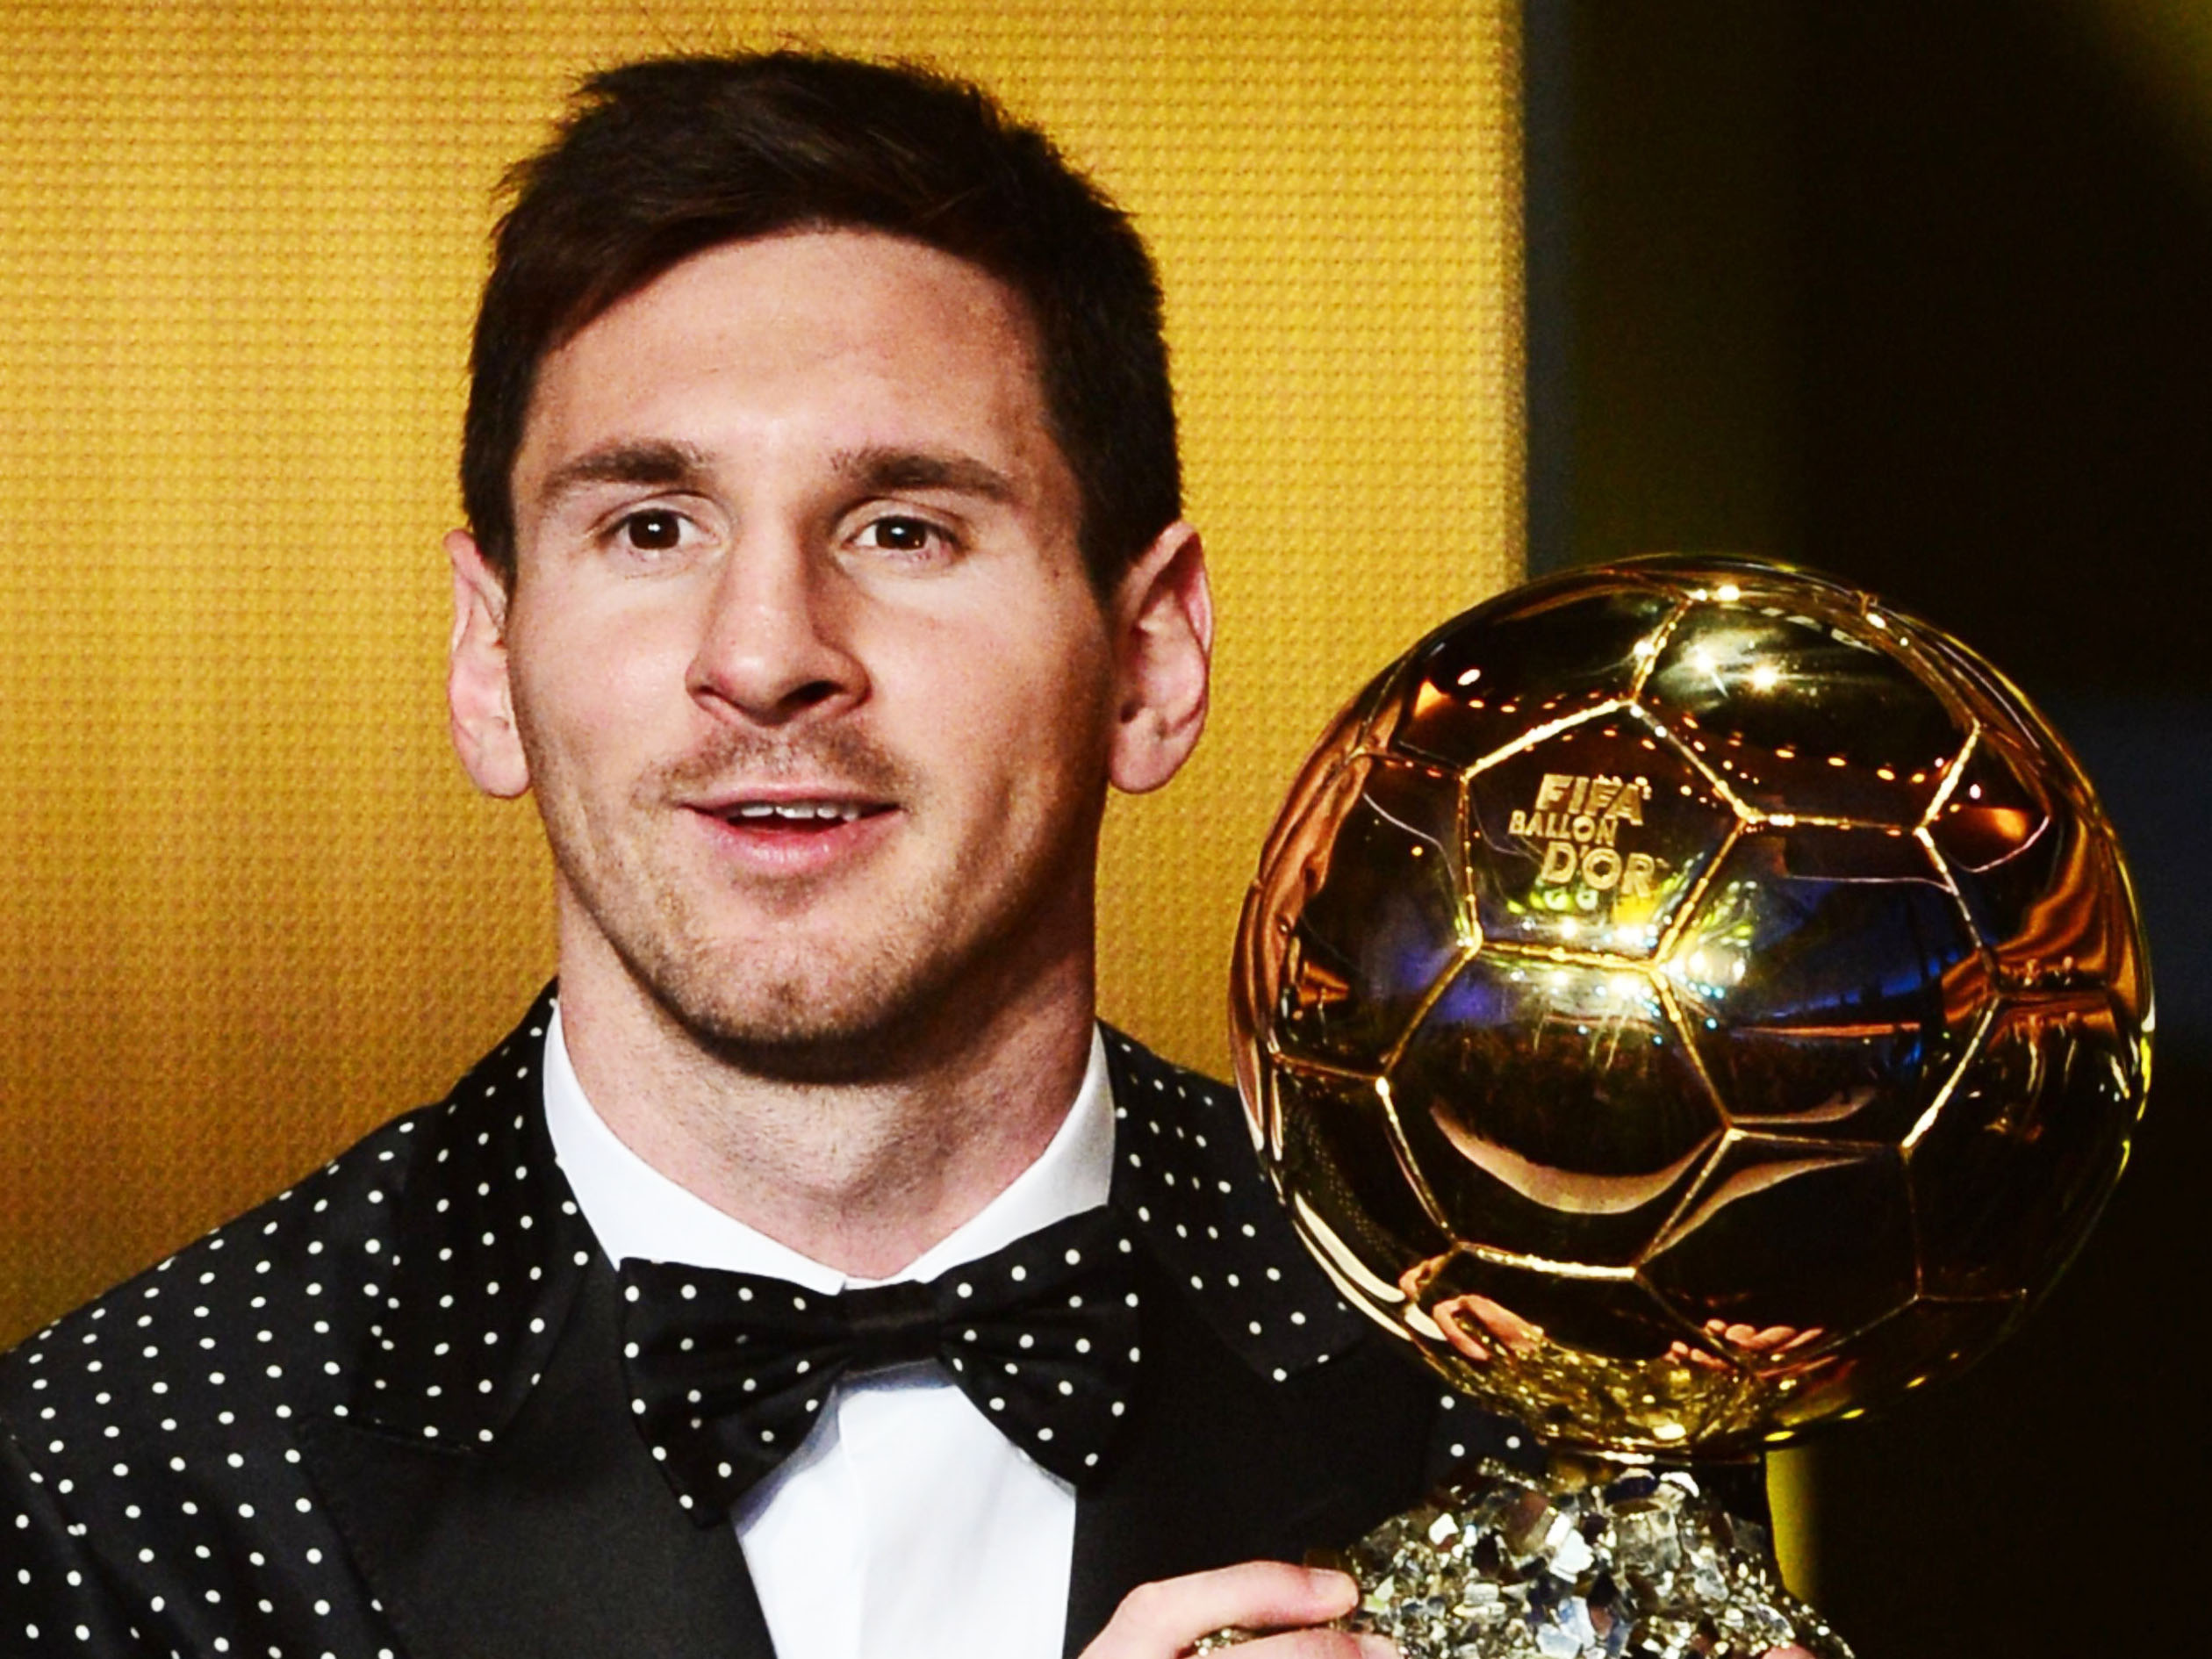 fifa ballon d 039 or award winner barcelona 039 s argentinian forward lionel messi poses with his trophy the fifa ballon d 039 or photo afp